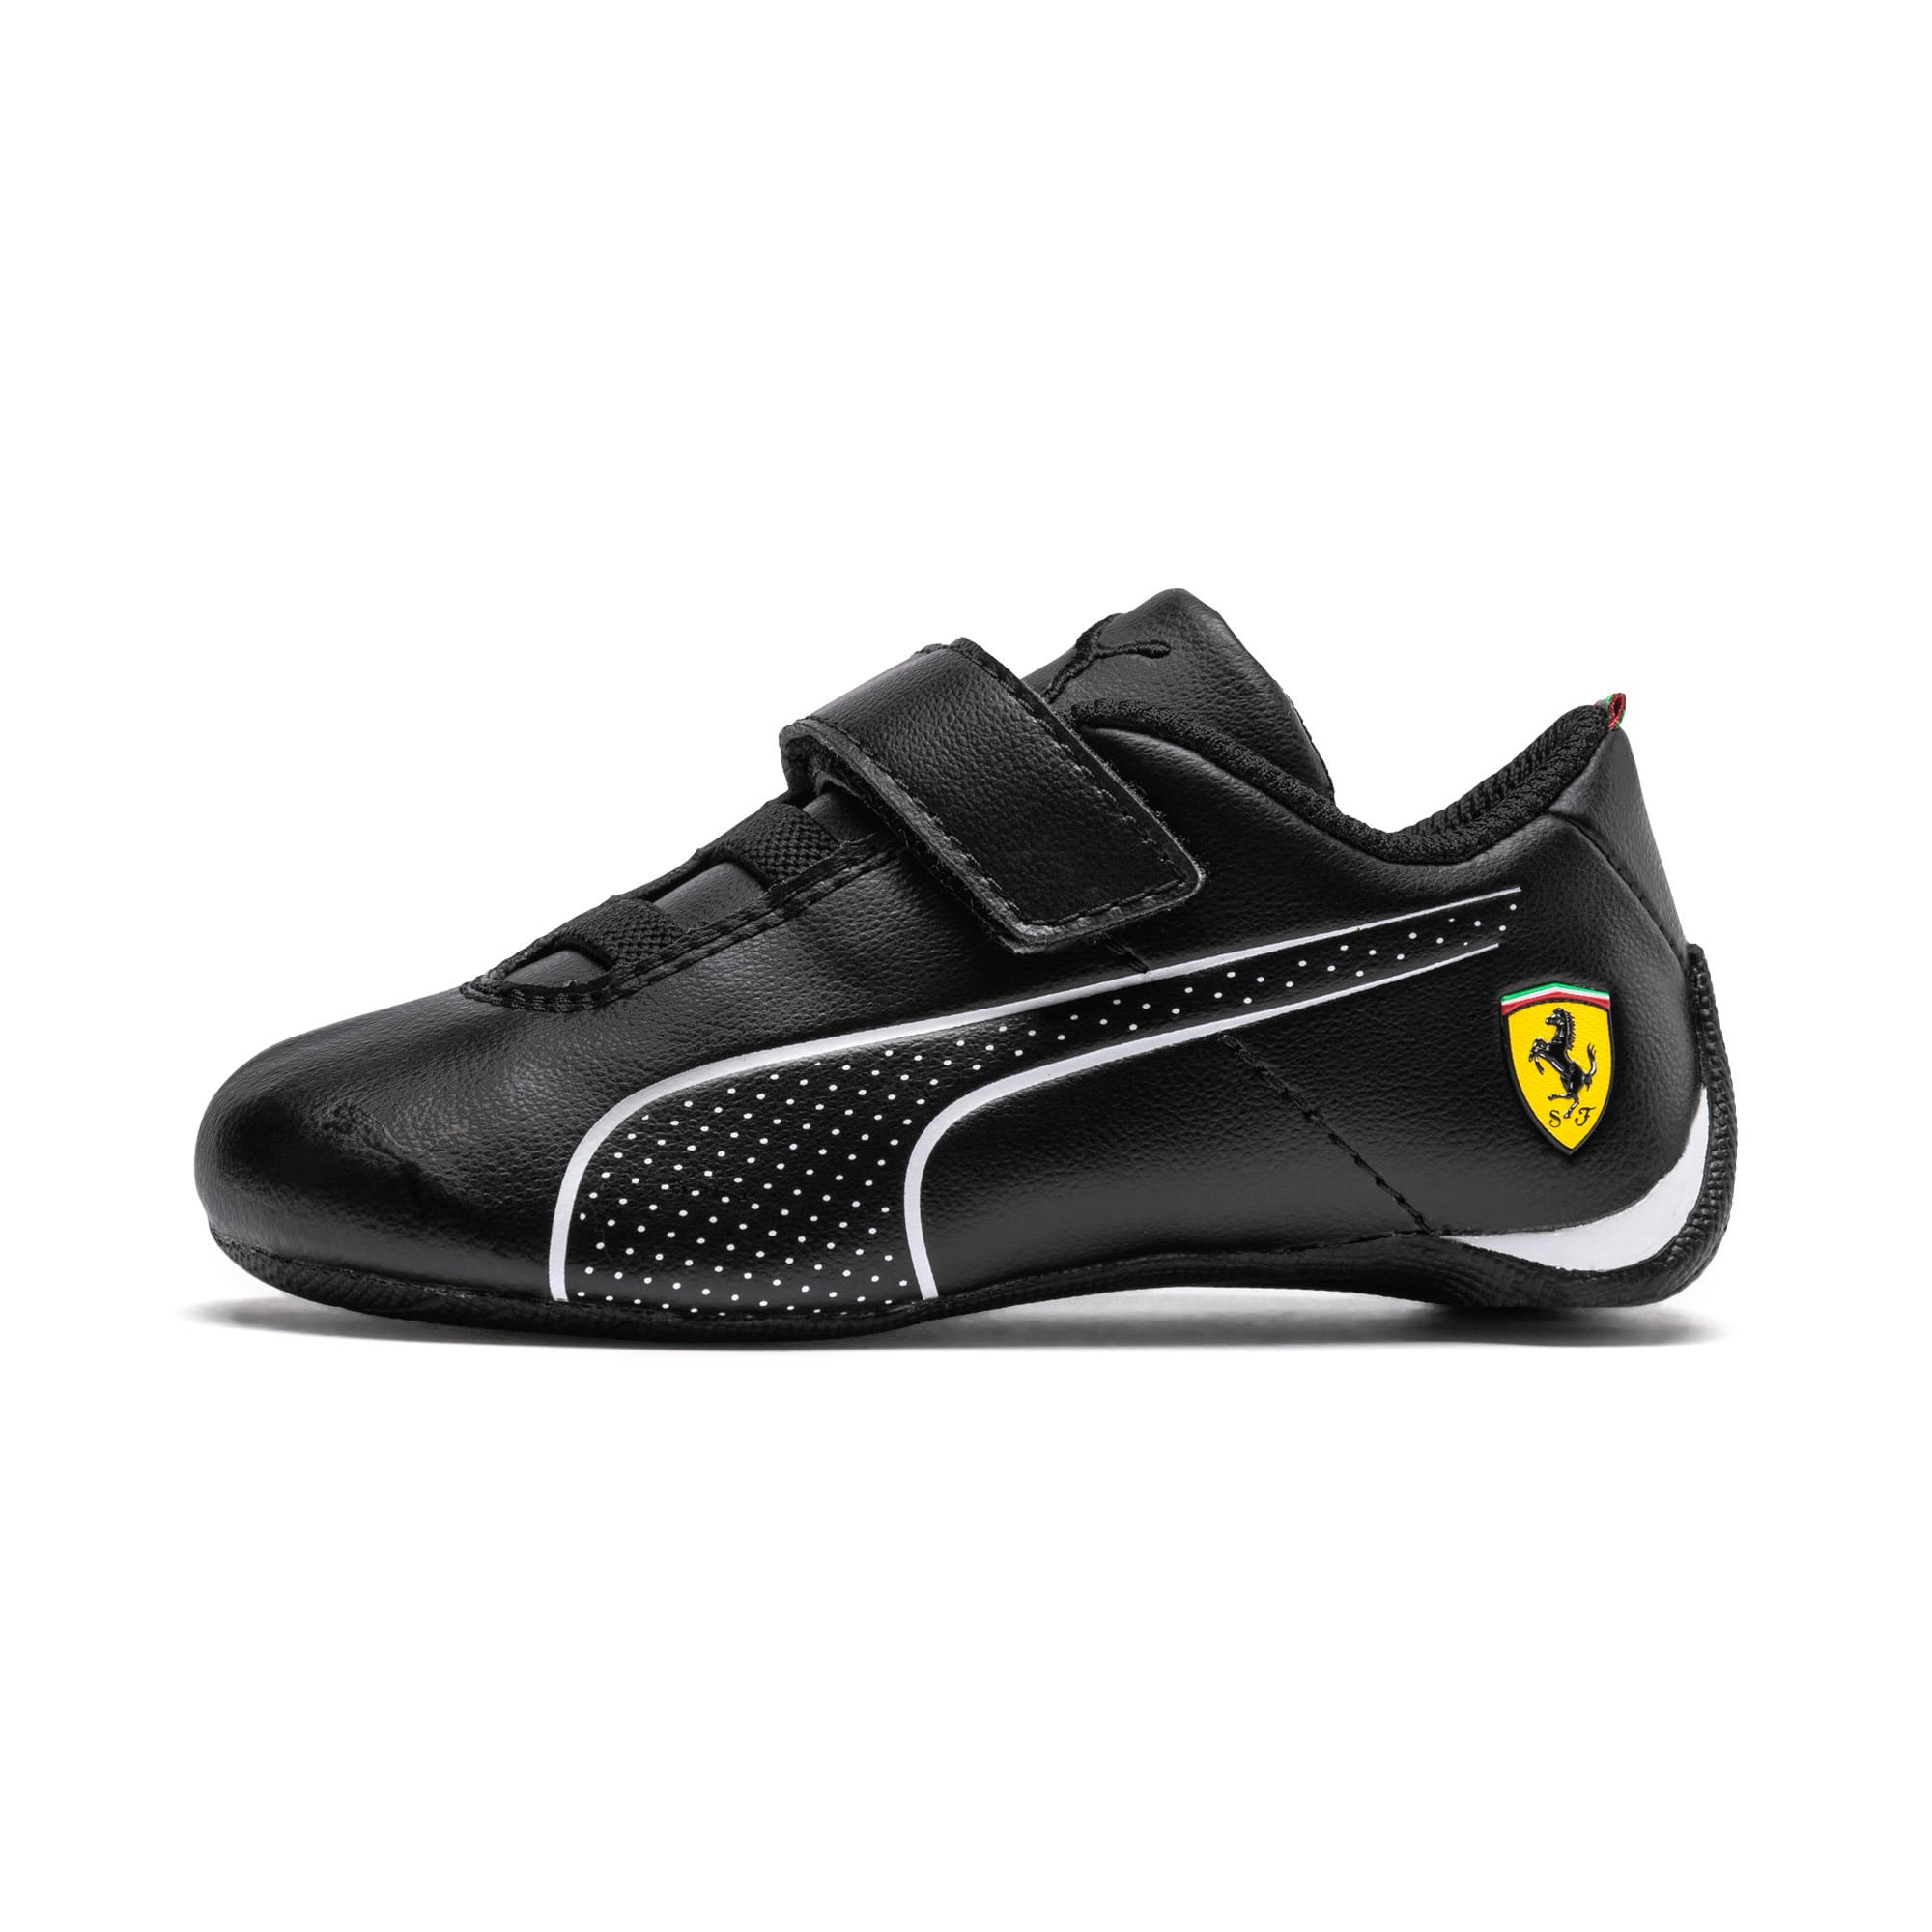 Thumbnail 1 of Scuderia Ferrari Future Cat Ultra Toddler Shoes, Puma Black-Puma White, medium